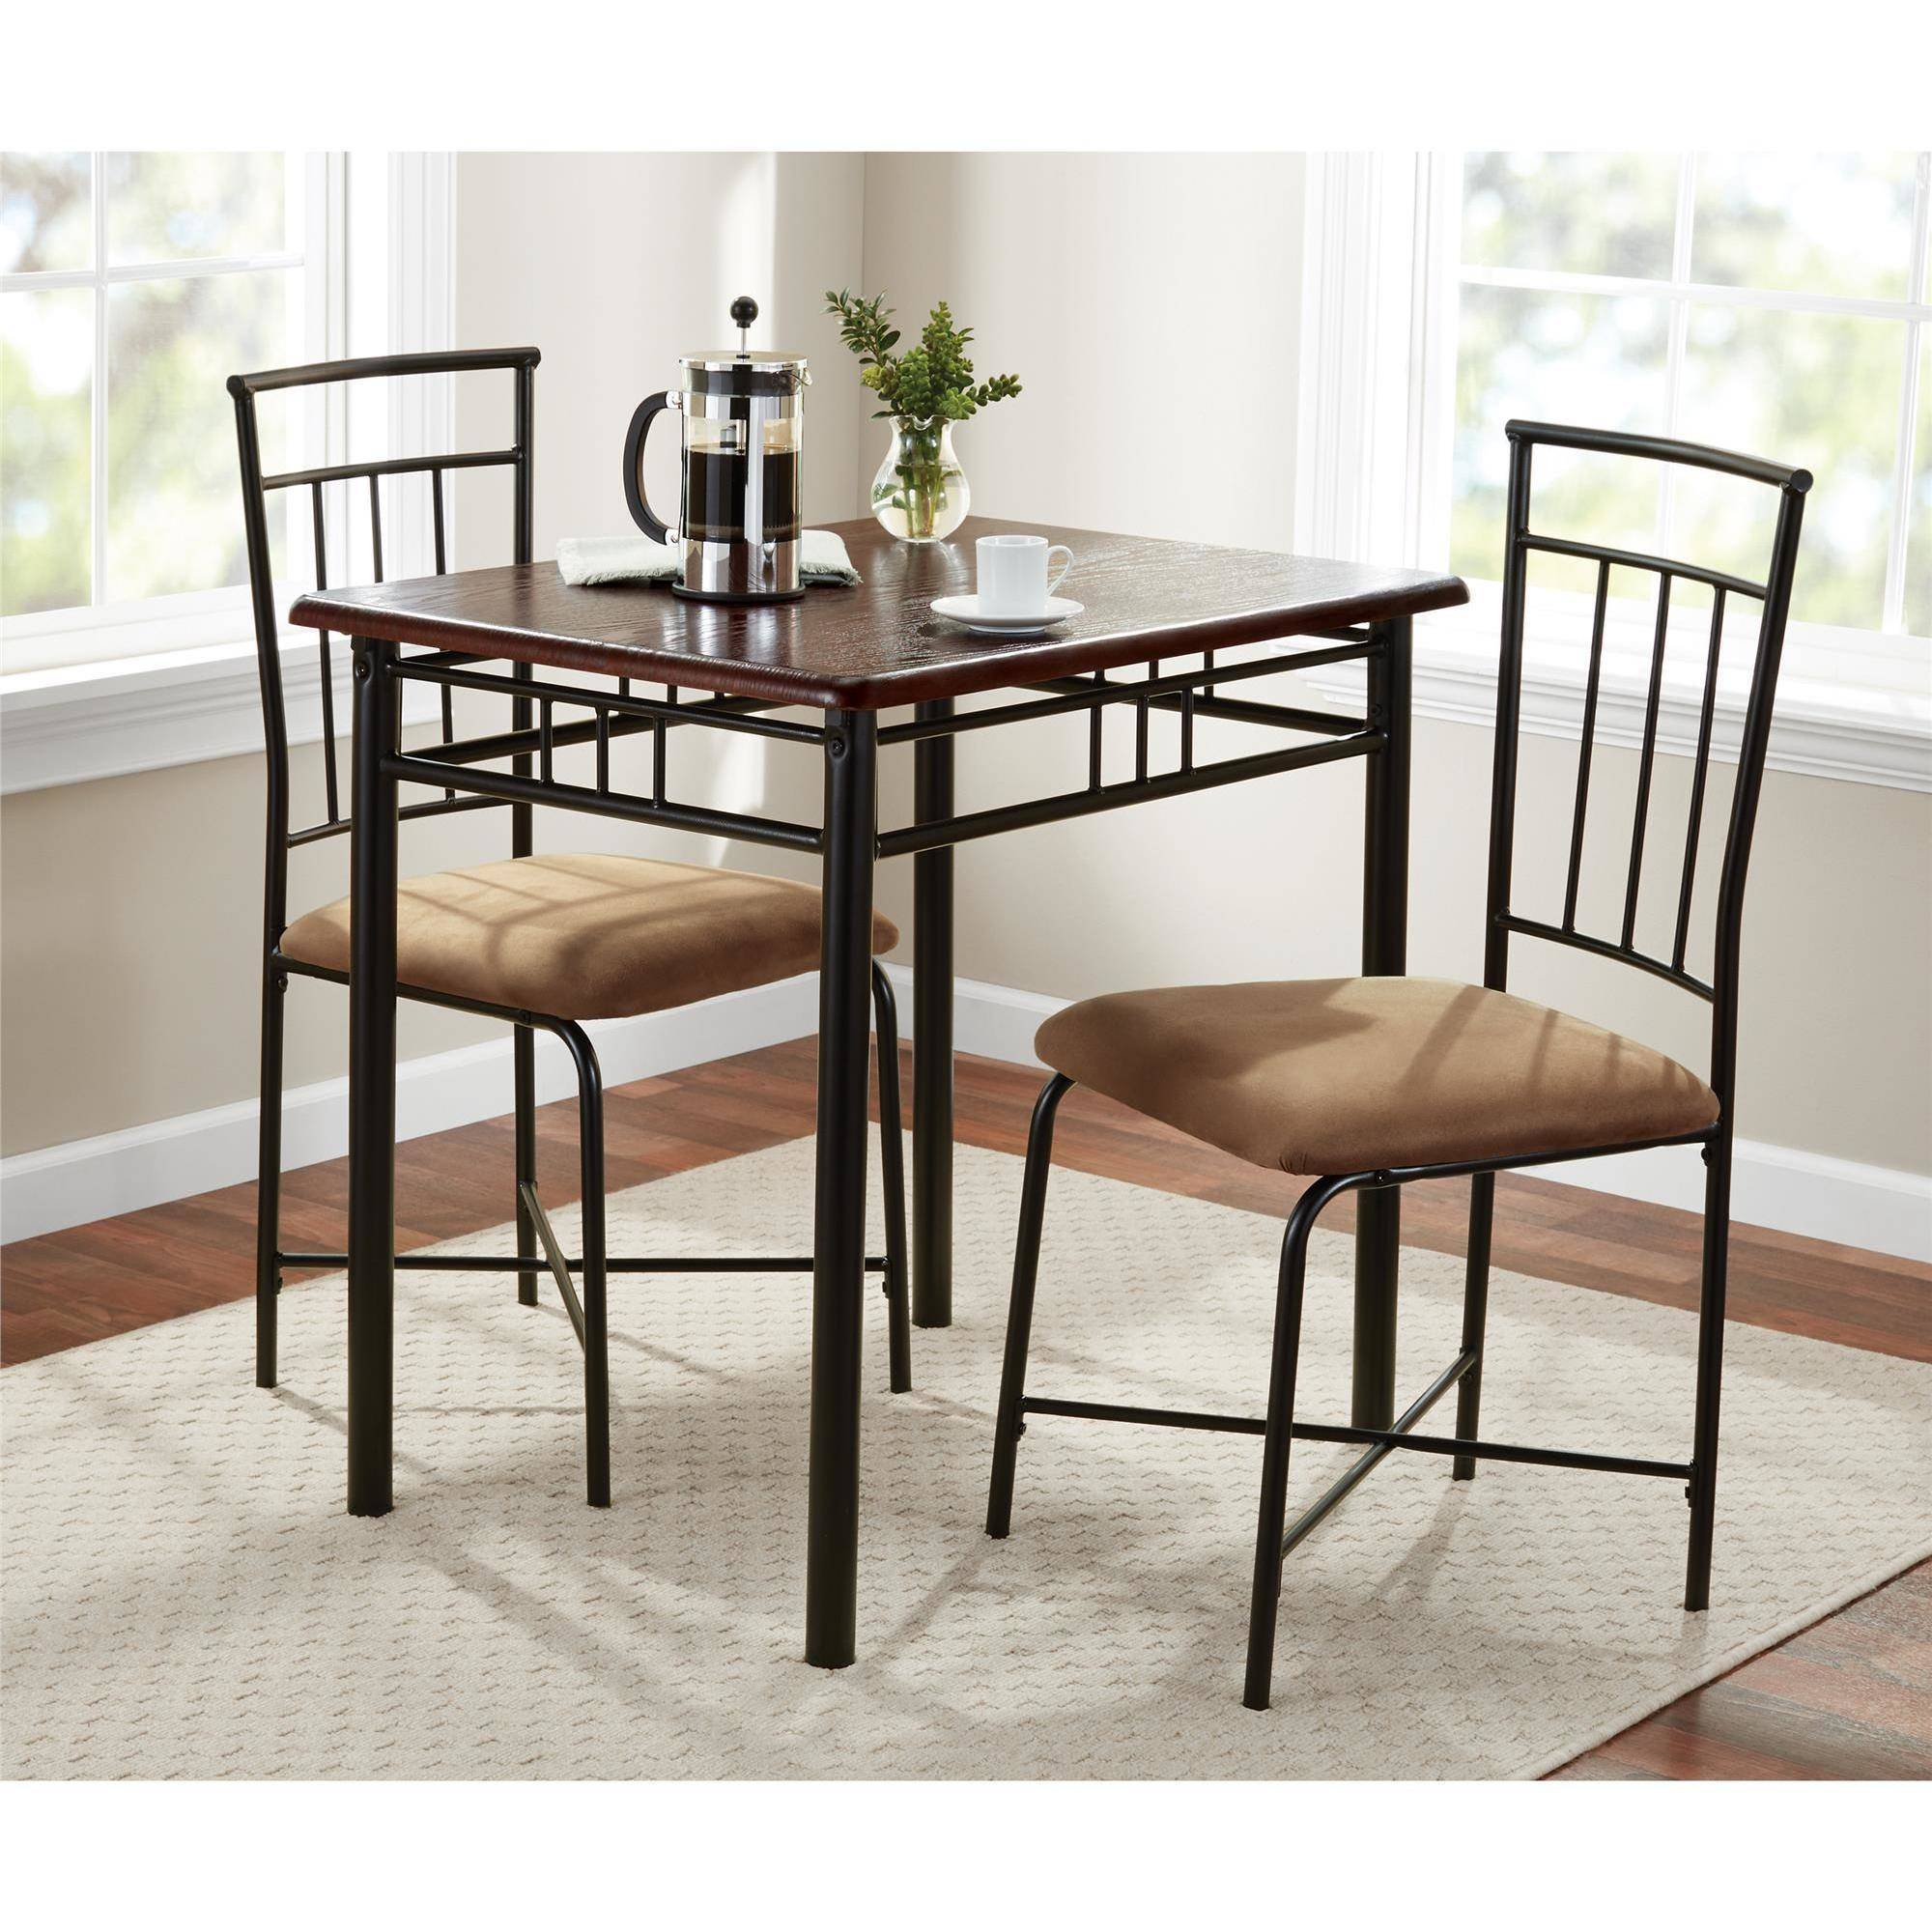 Beau Mainstays 3 Piece Dining Set, Wood And Metal